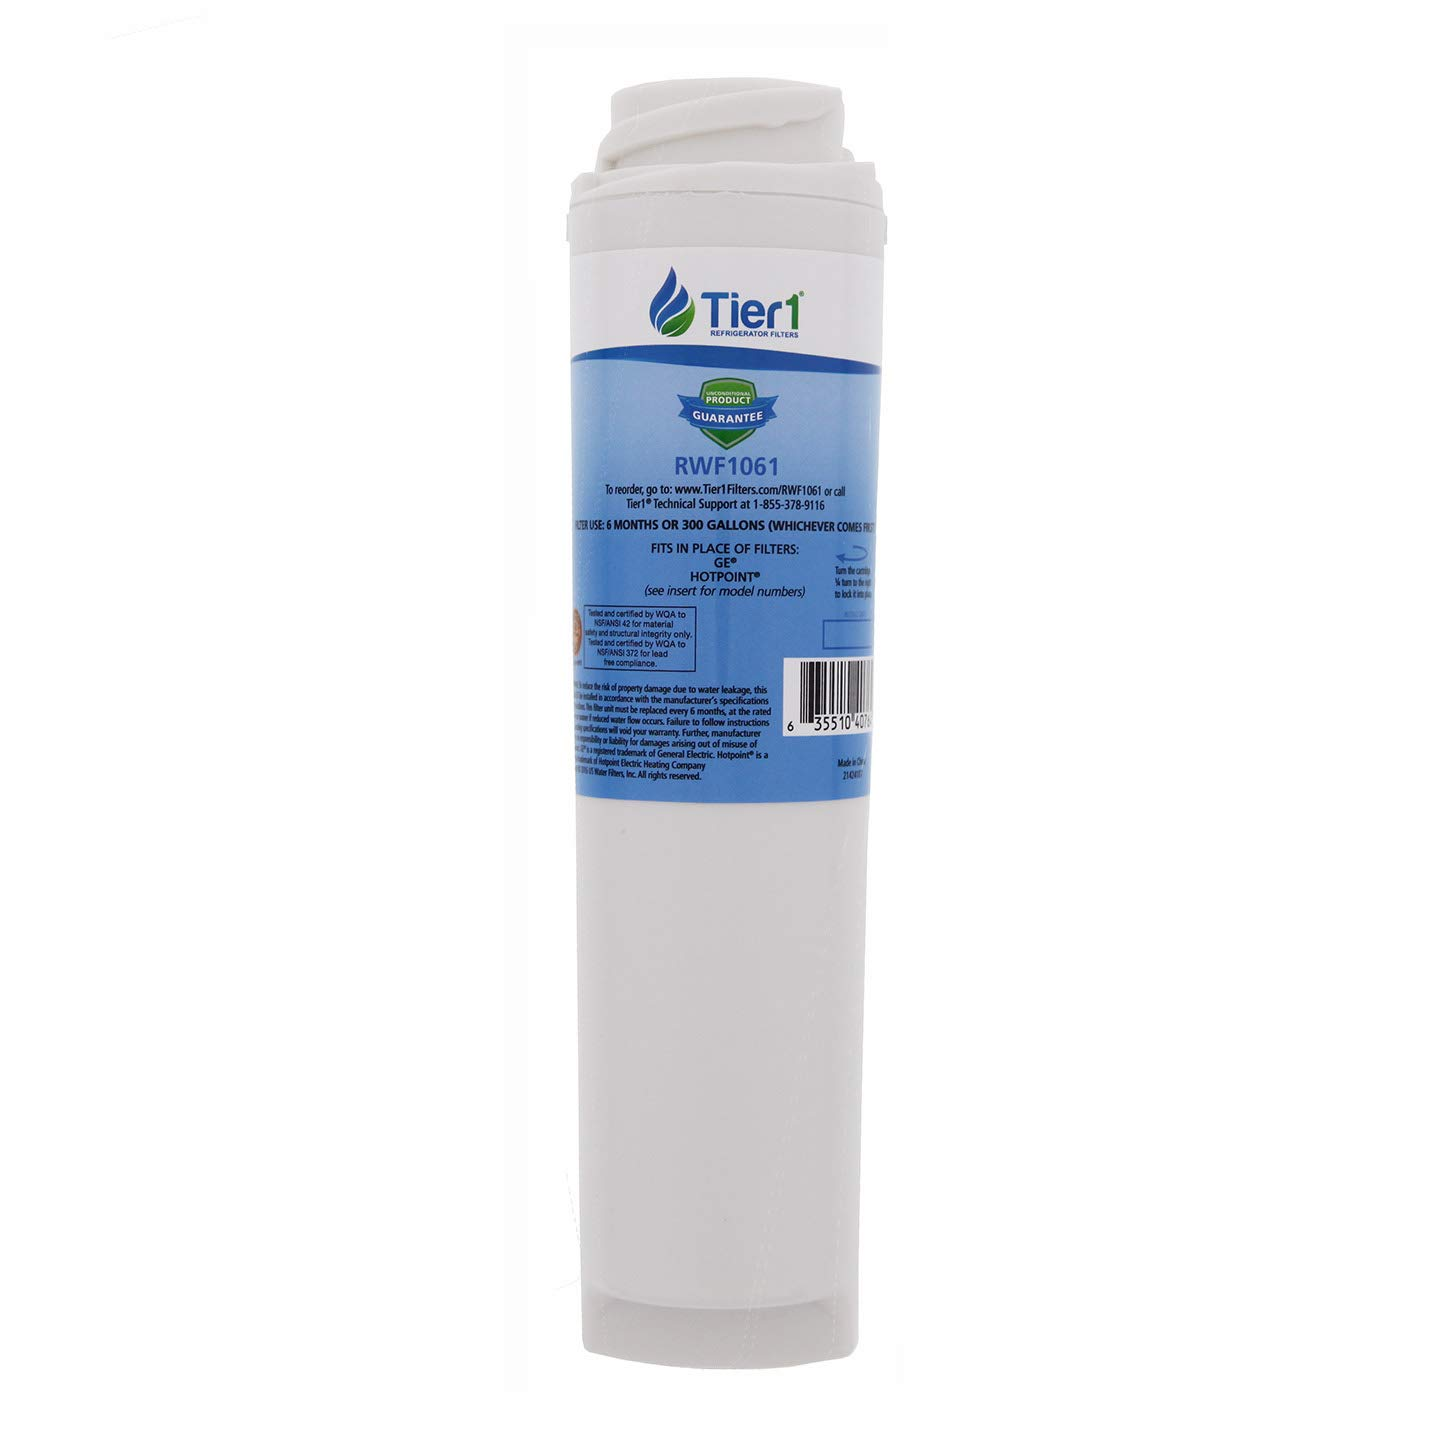 Tier1 Replacement for GE GSWF Smartwater, Kenmore 46-9914, 469914, 9914 Refrigerator Water Filter